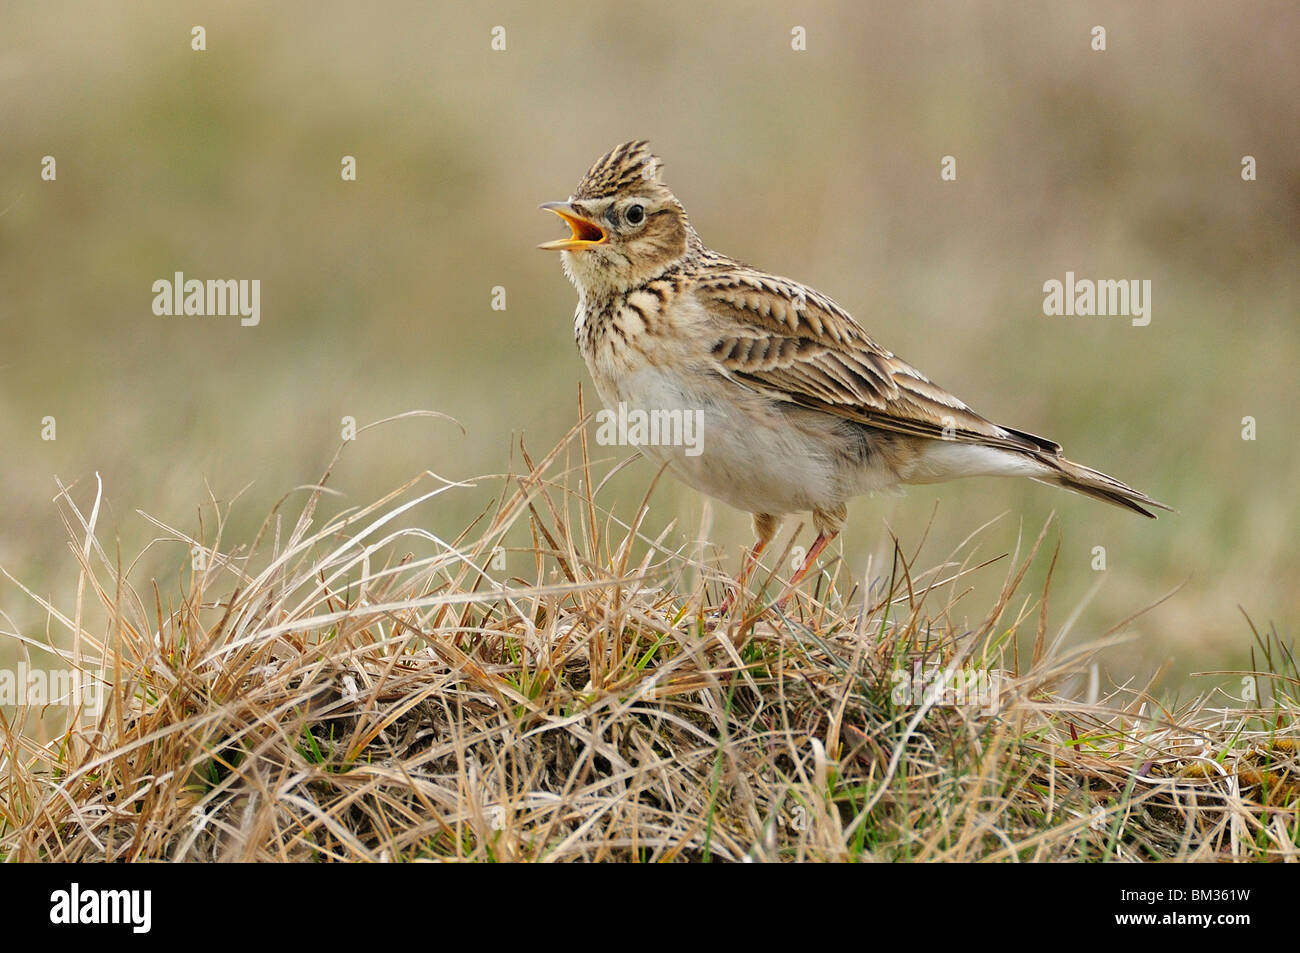 Skylark (Alauda arvensis), adult perched on grass while singing, Netherlands. - Stock Image